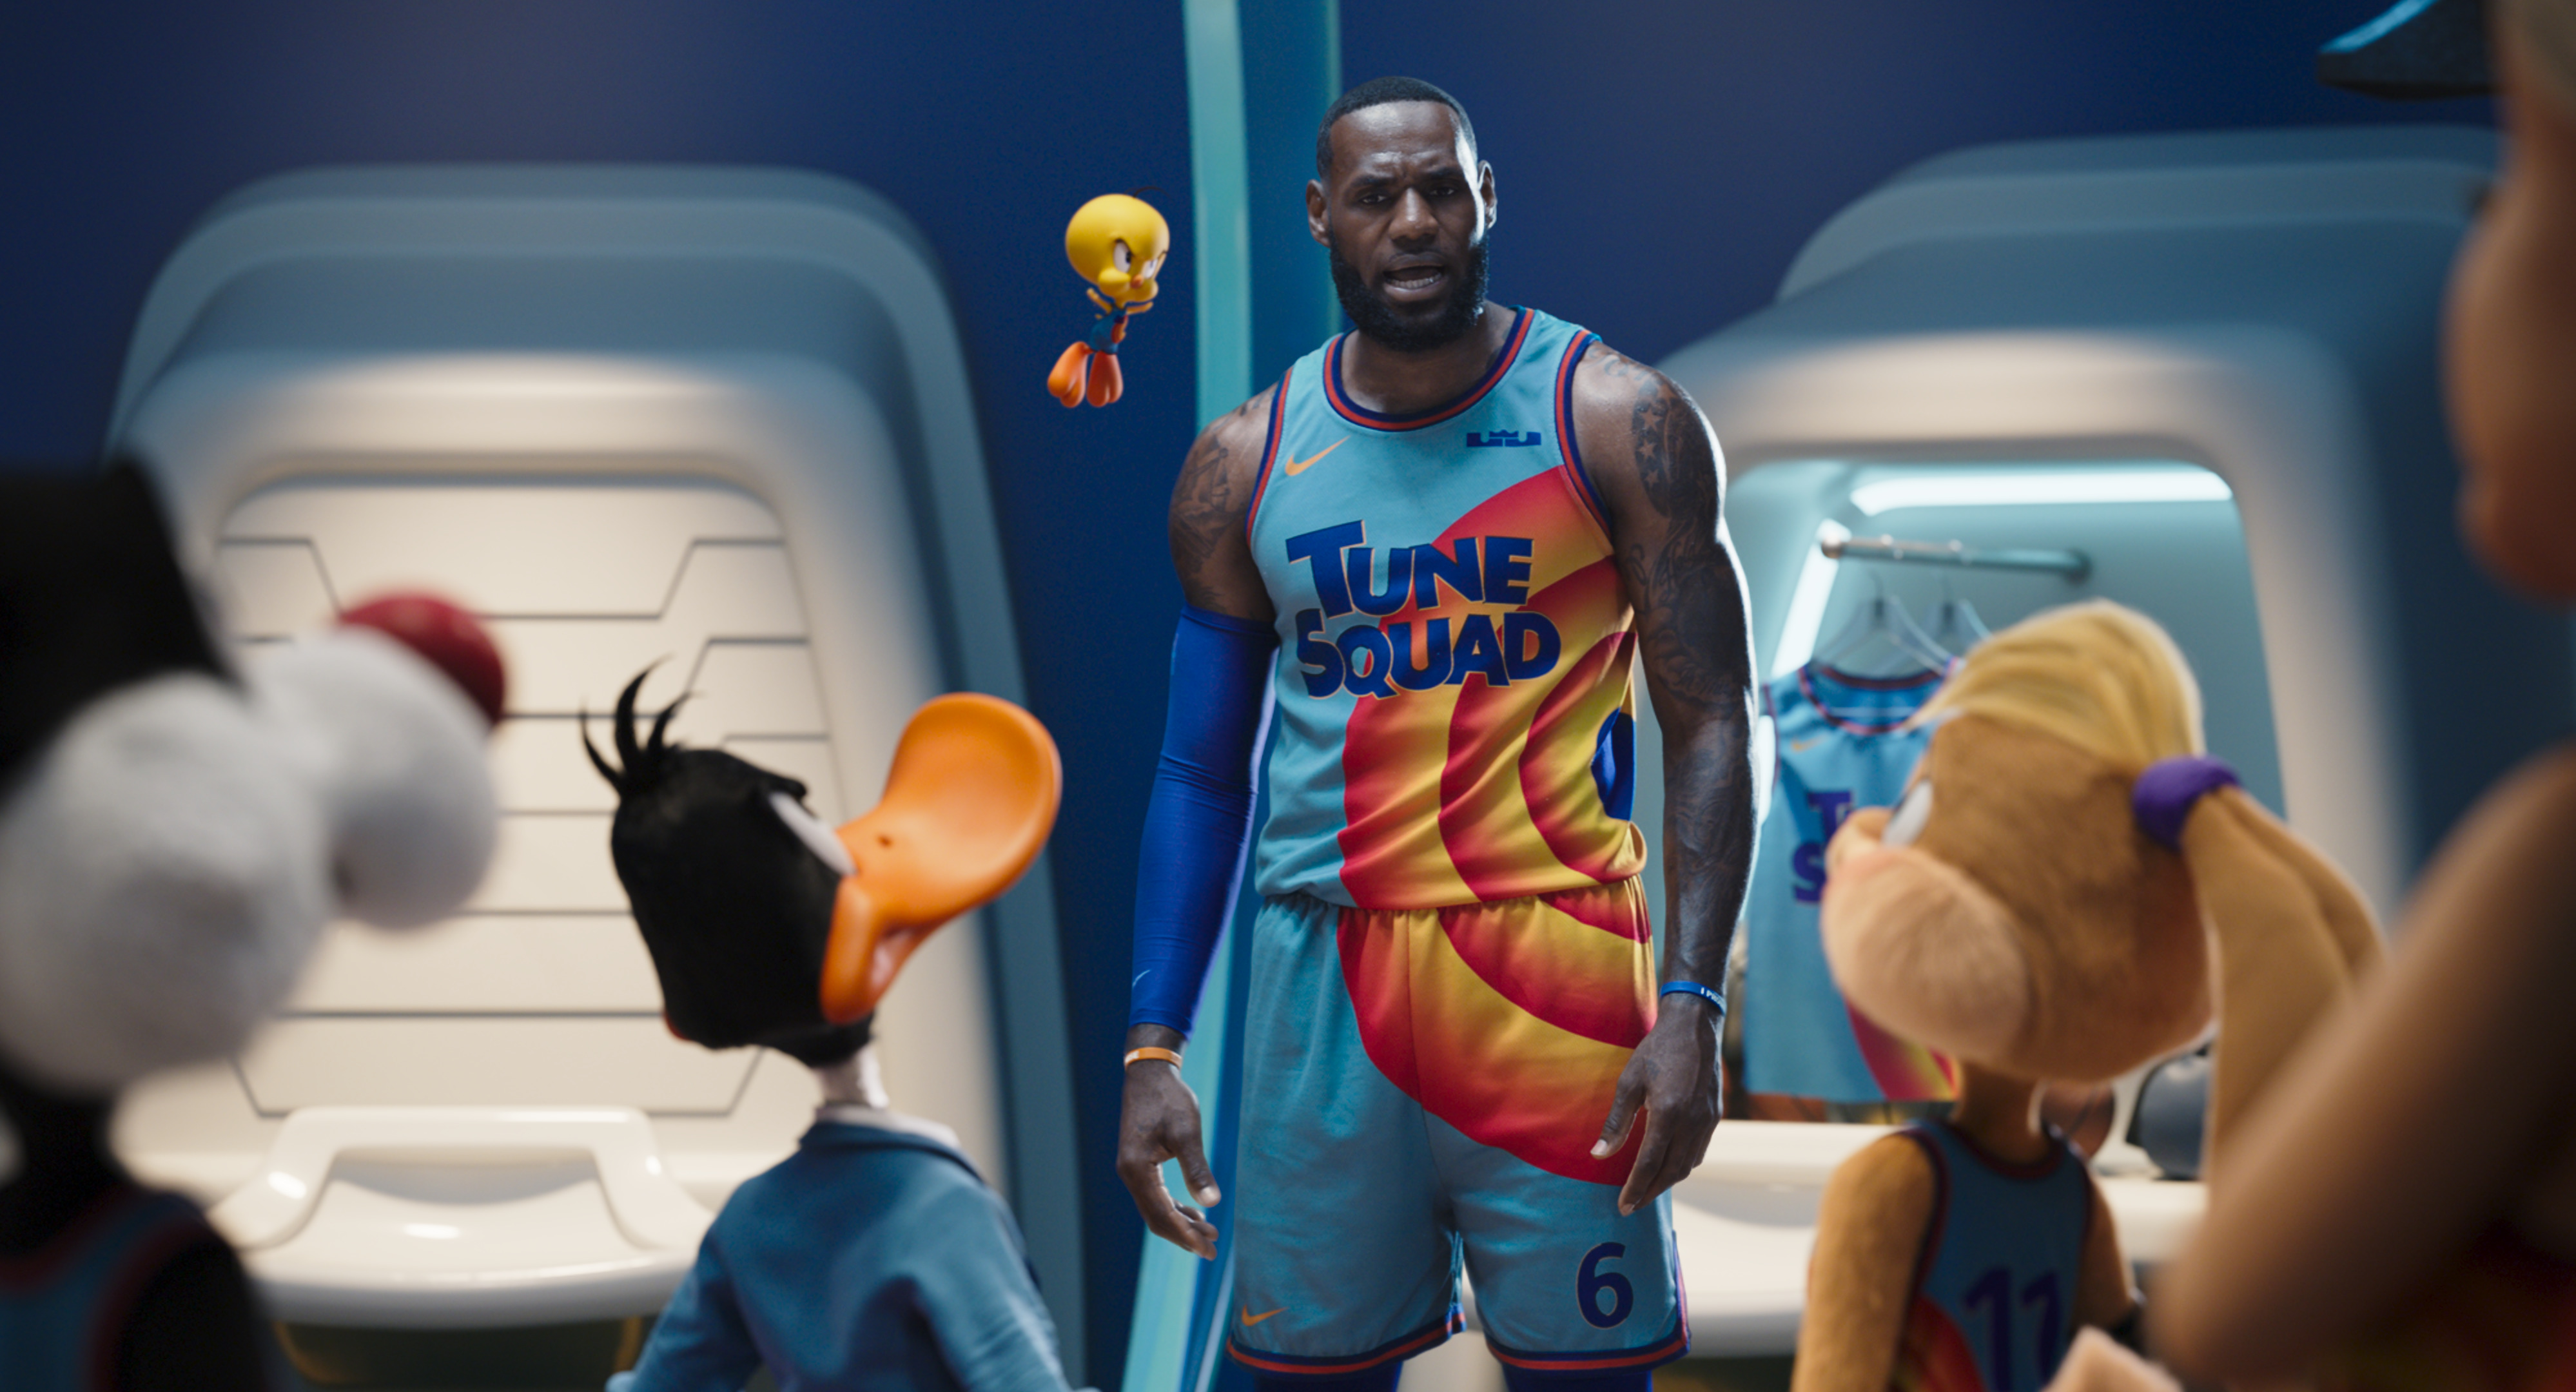 Space Jam: A New Legacy' review: LeBron James tries on Michael Jordan's  shoes in a numbing animated/live-action mix   CNN